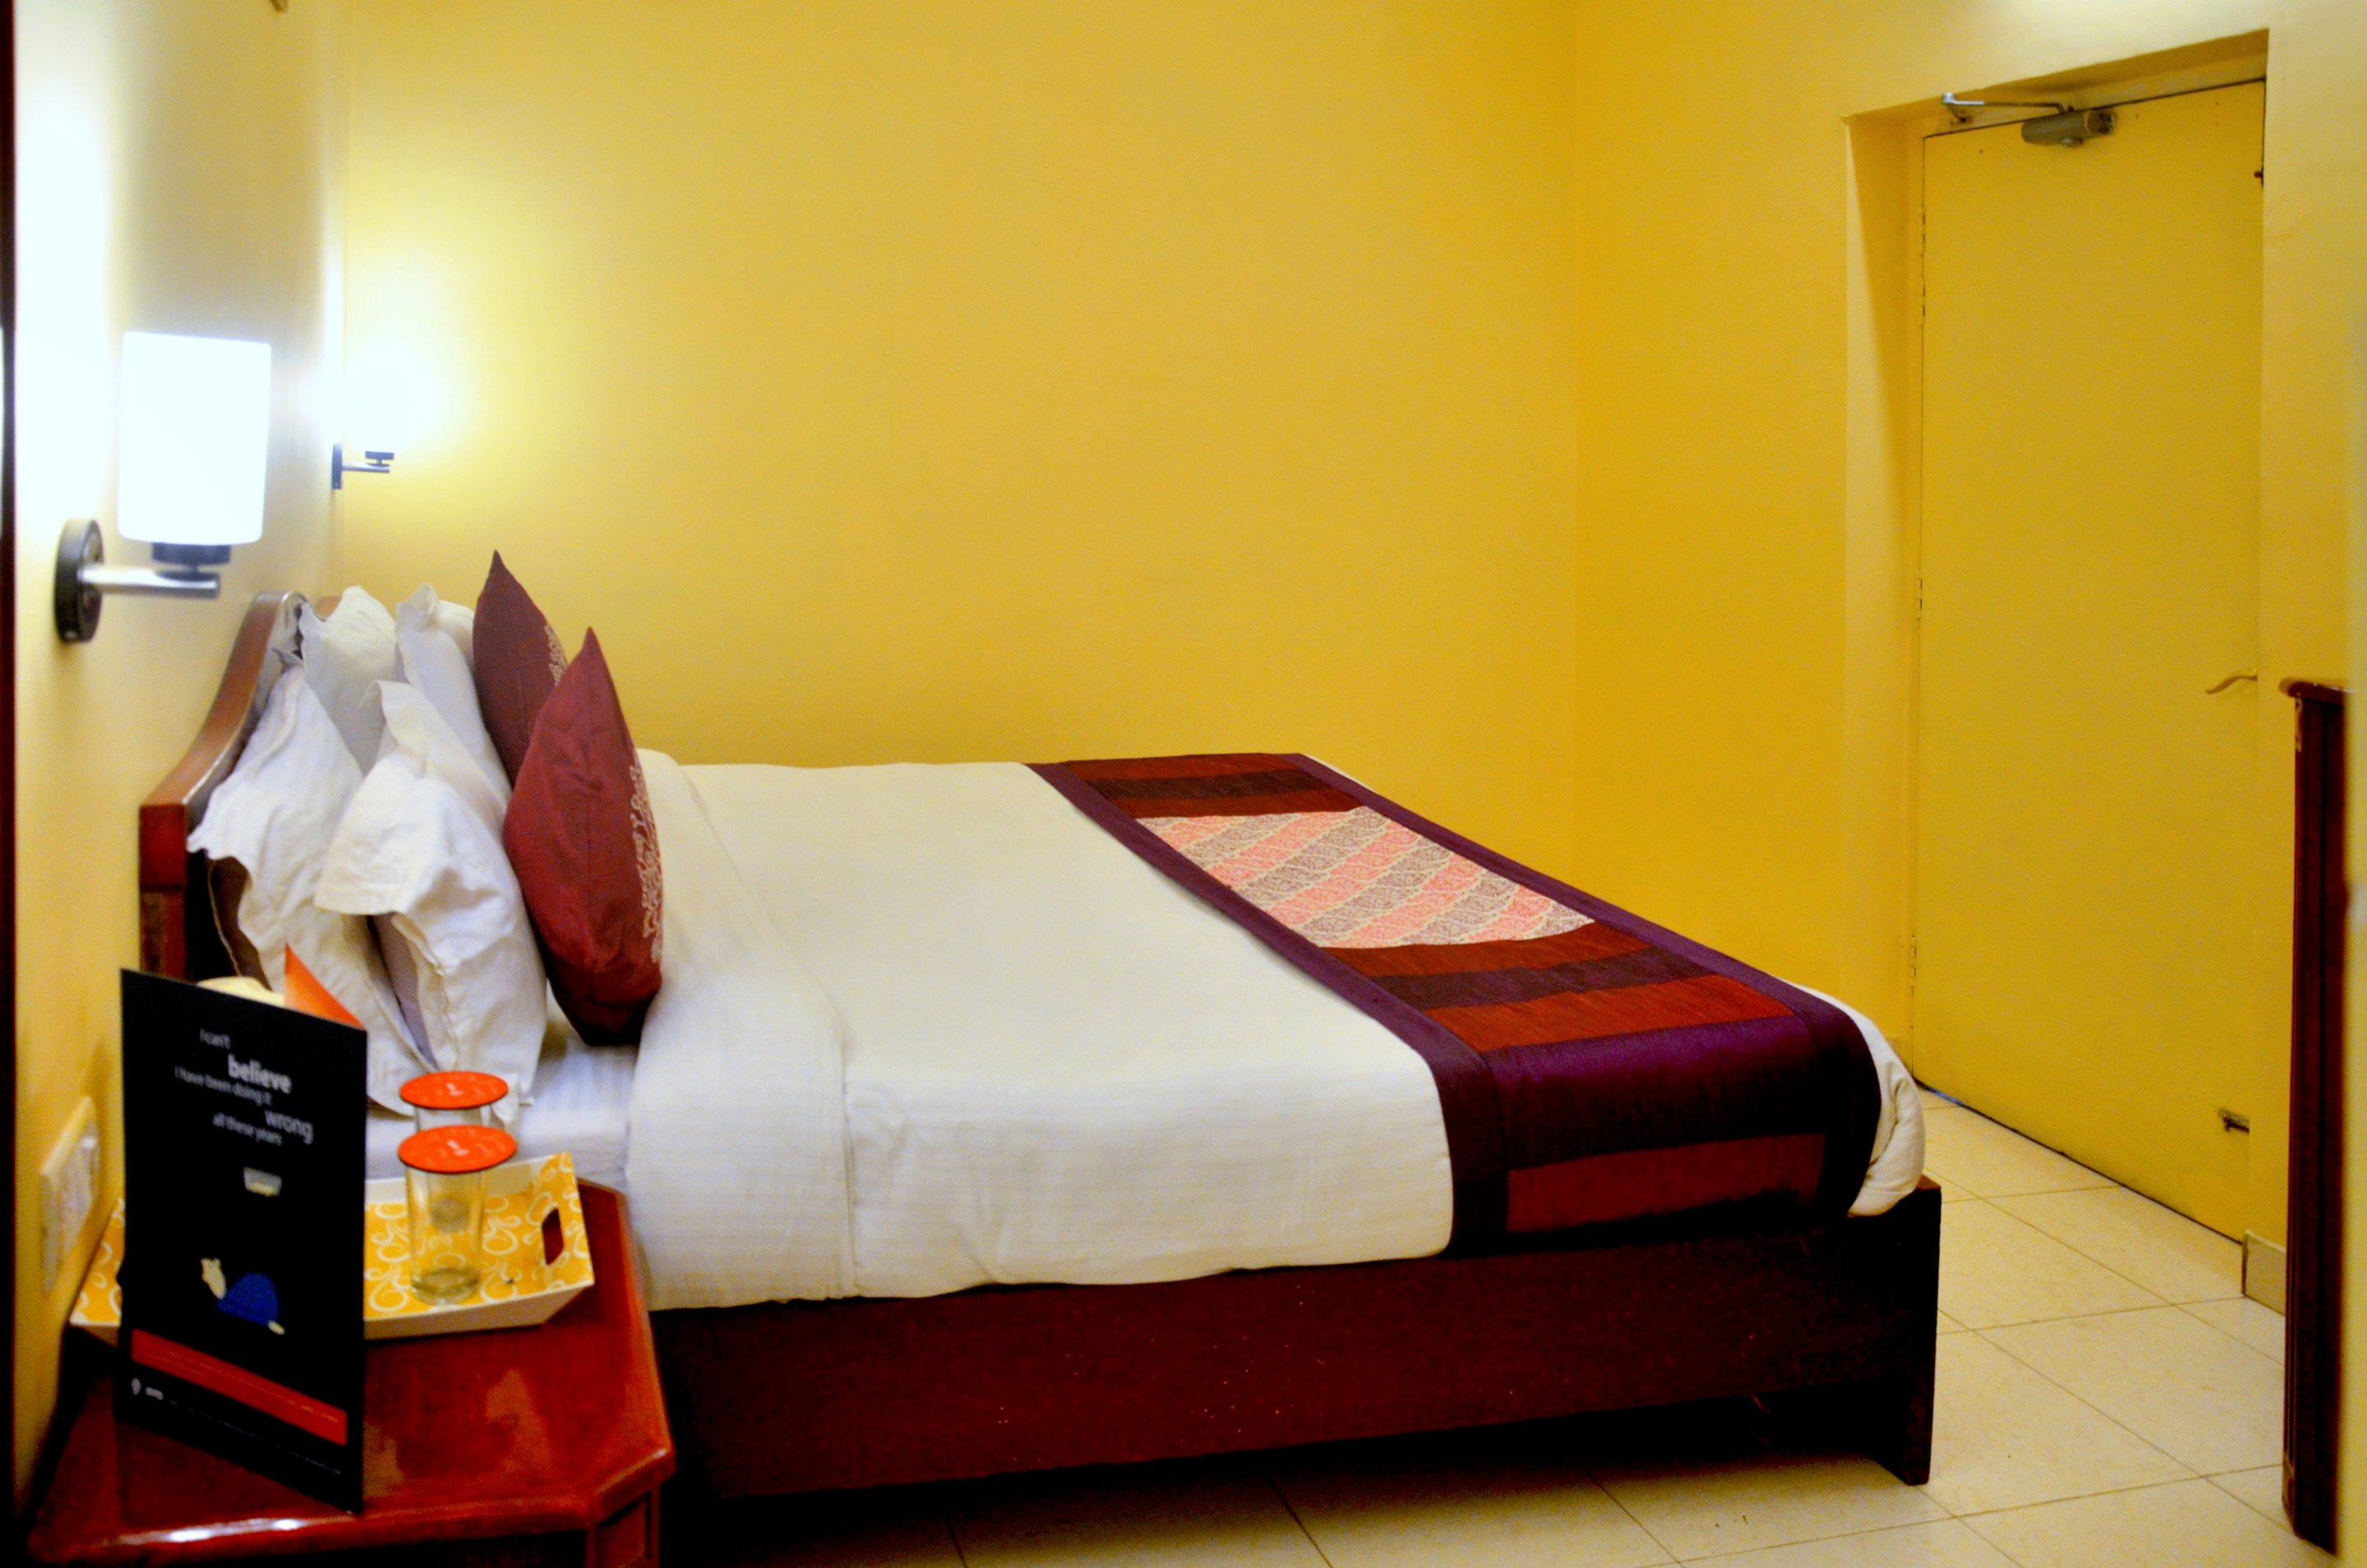 OYO Rooms Bhoothnath Market 1 in Lucknow